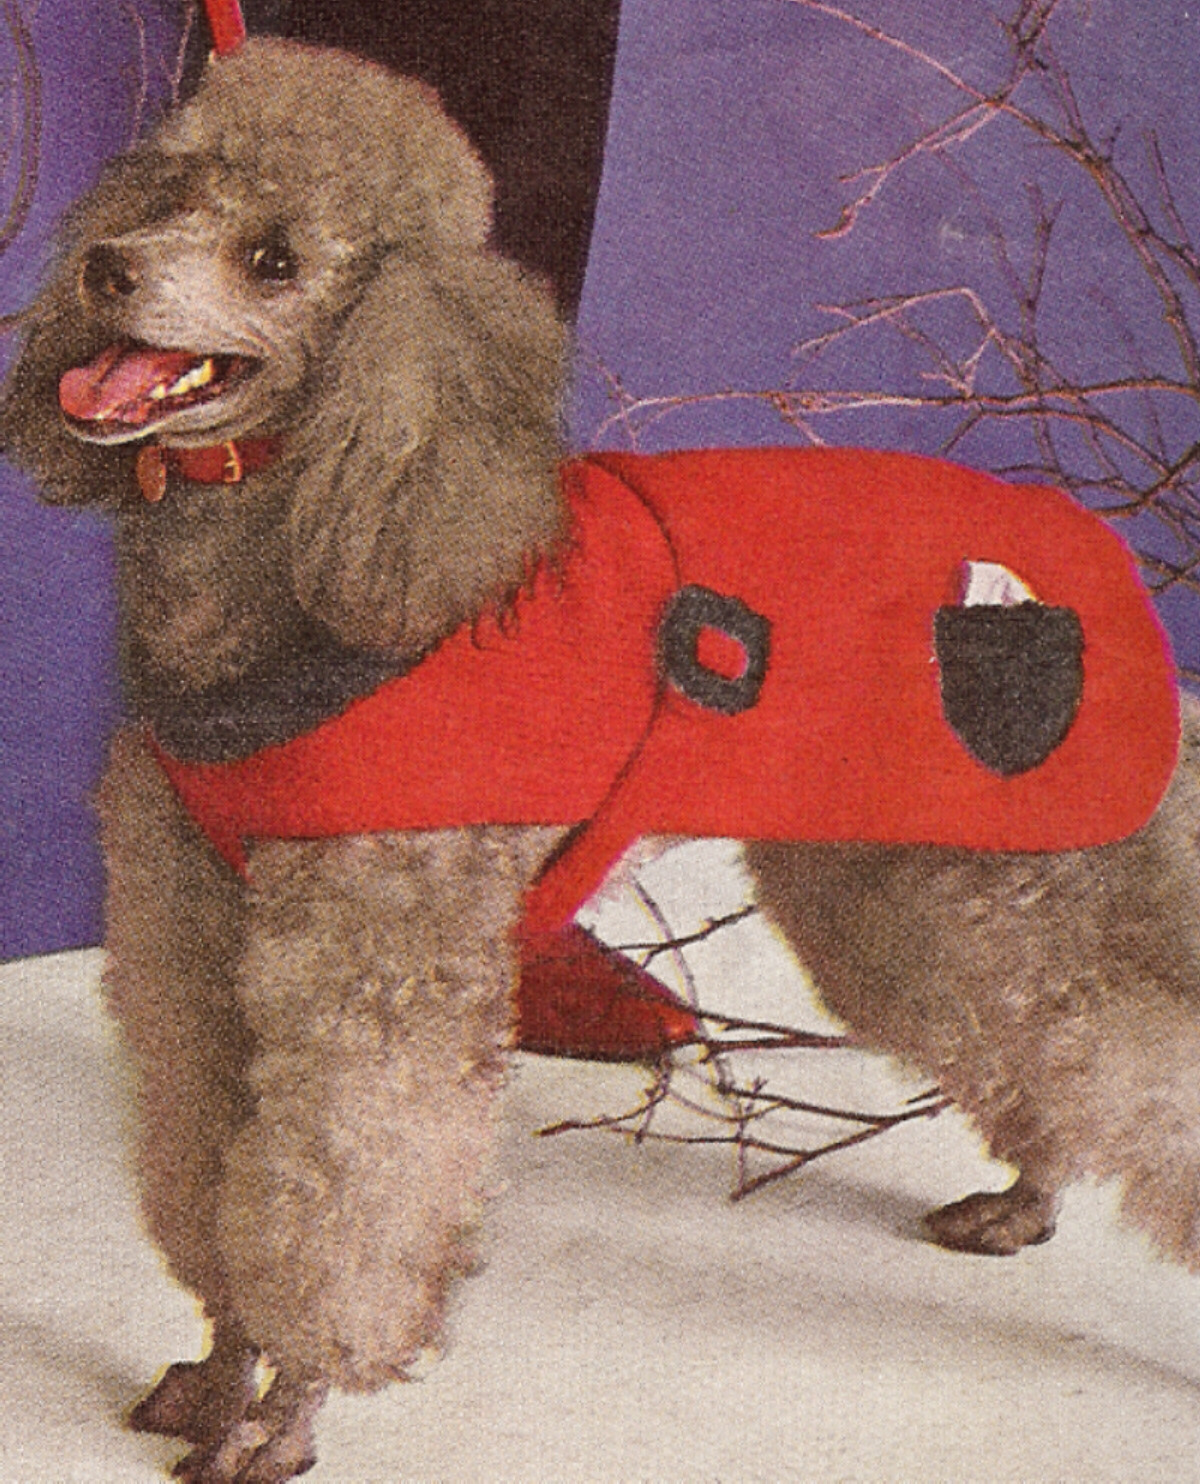 Diy Knitting Patterns : Vintage Knitting PATTERN Dog Sweater Coat Small Med Lg eBay